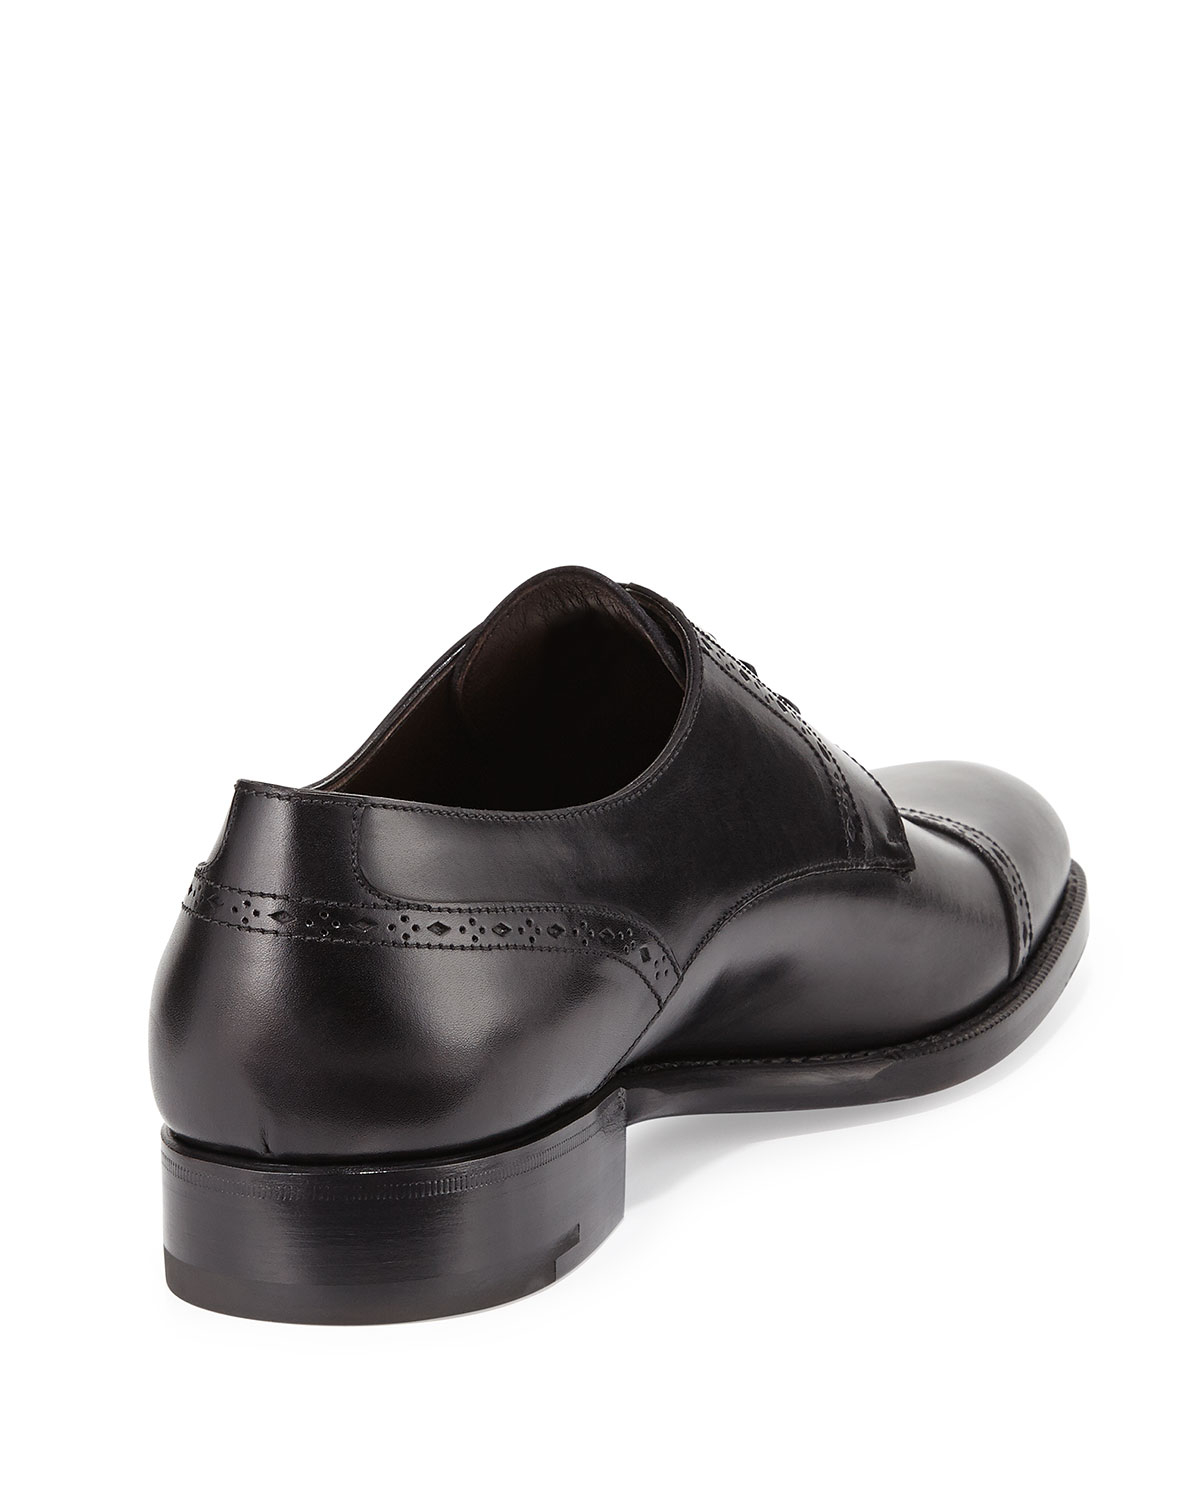 Ermenegildo Zegna Leather Cap-Toe Derby Shoe in Black for Men - Lyst